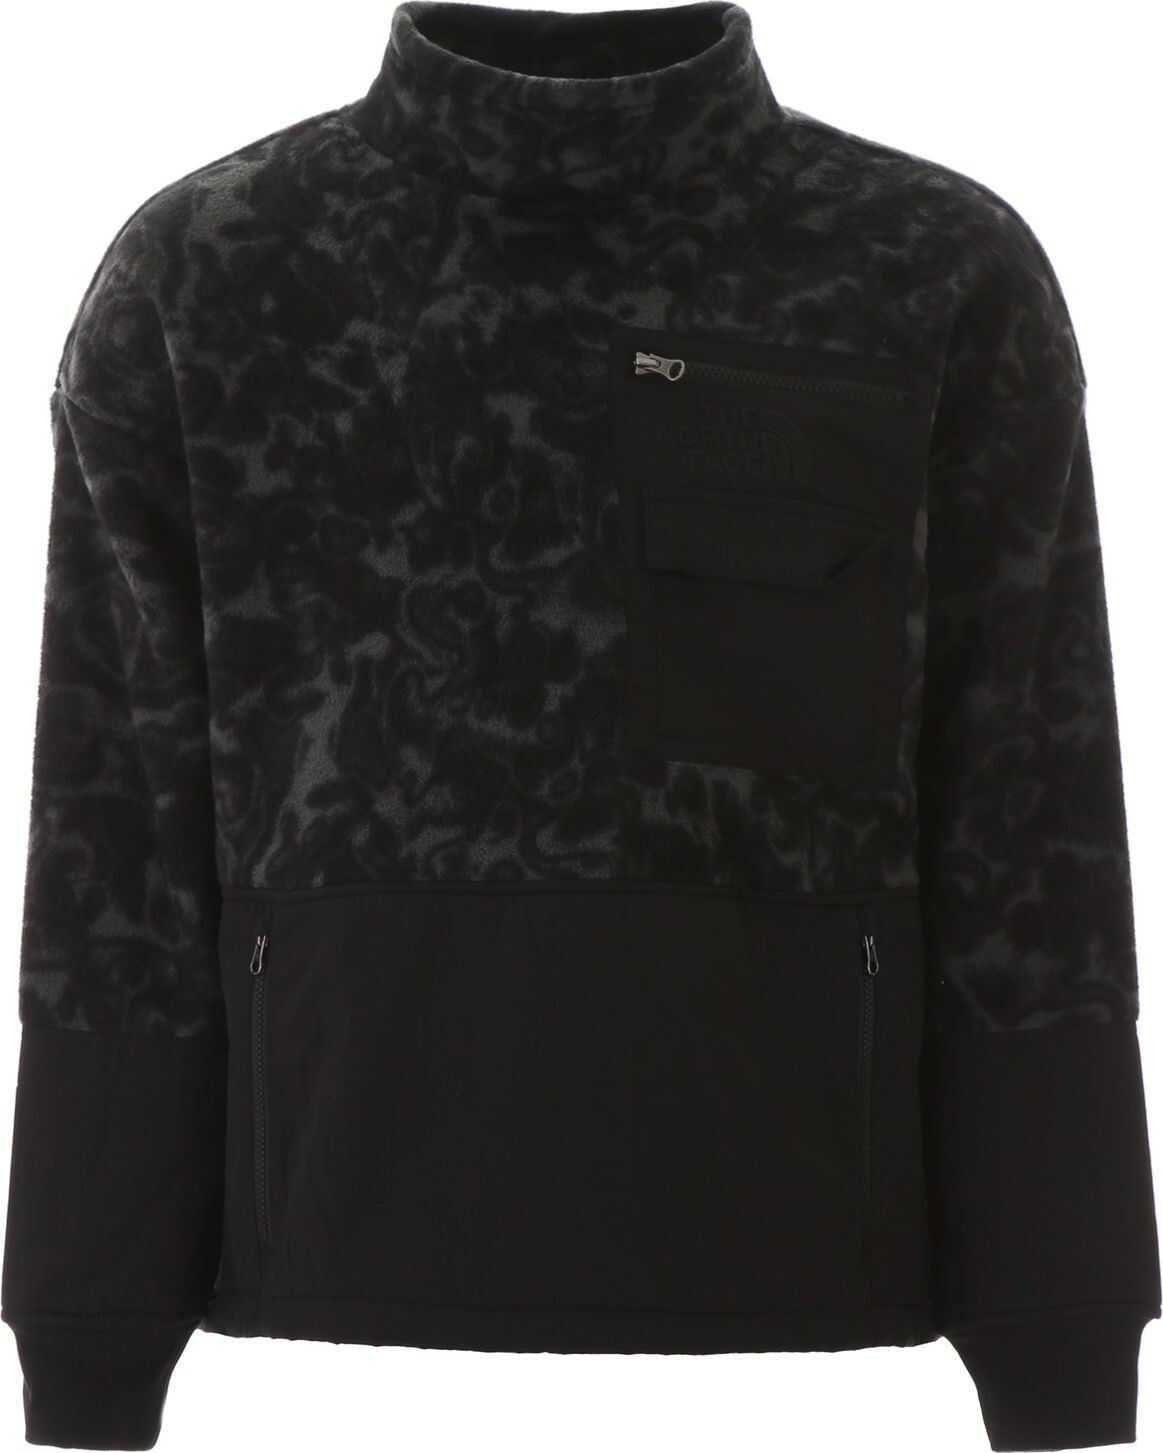 The North Face 94 Rage Jacket BLACK